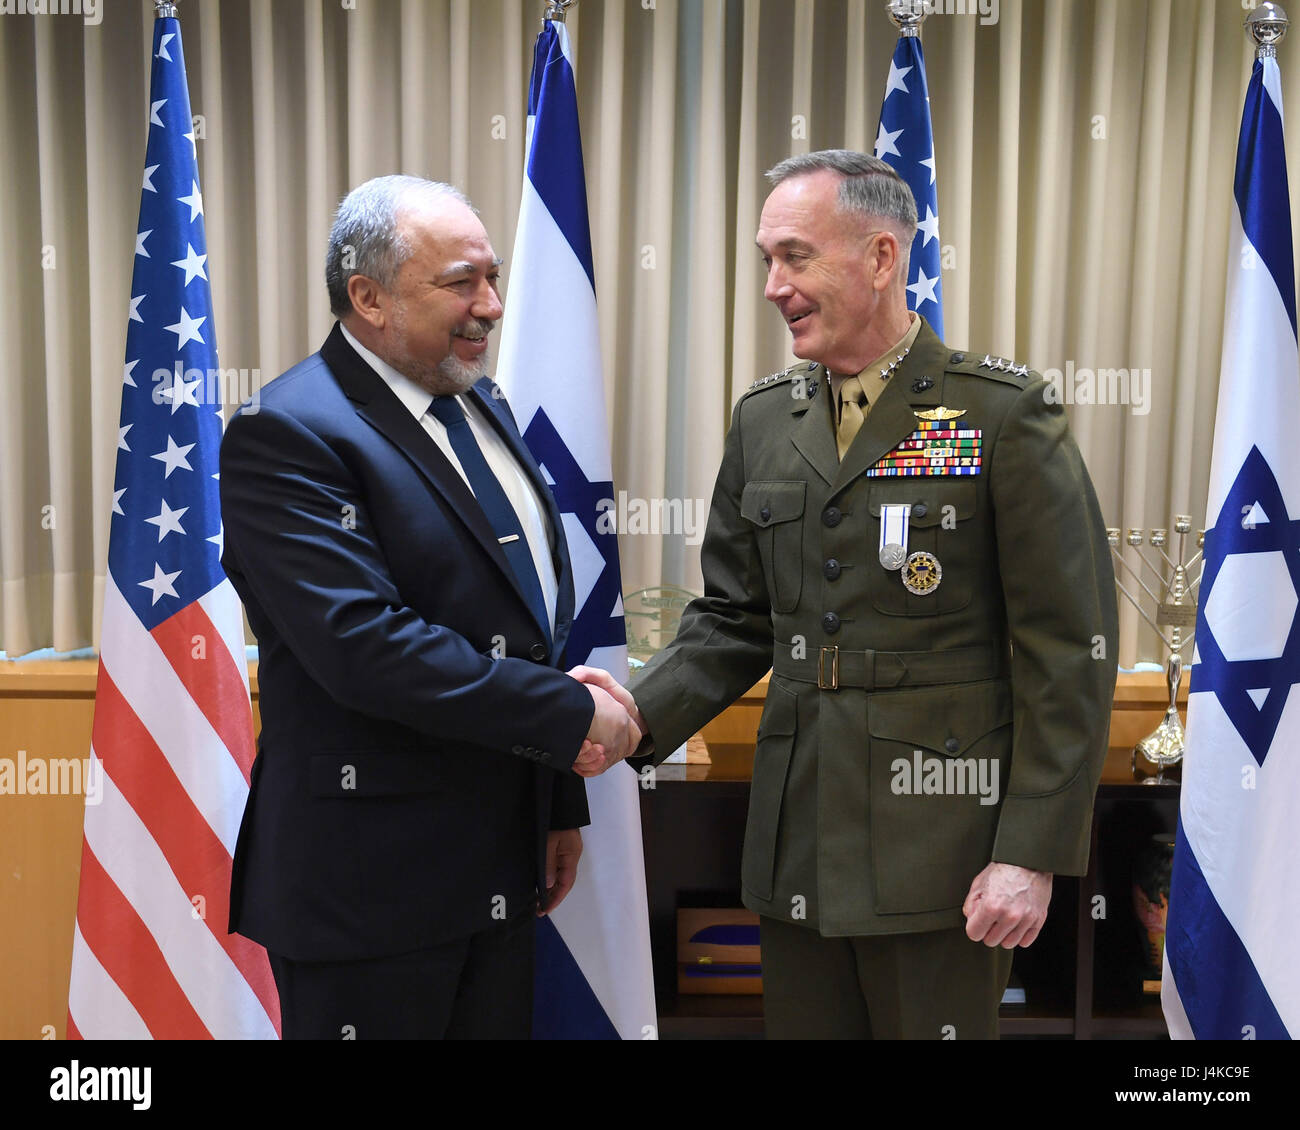 Chairman of the Joint Chiefs of Staff, General Joseph Dunford meets Israeli Minister of Defense Avigdor Lieberman, - Stock Image